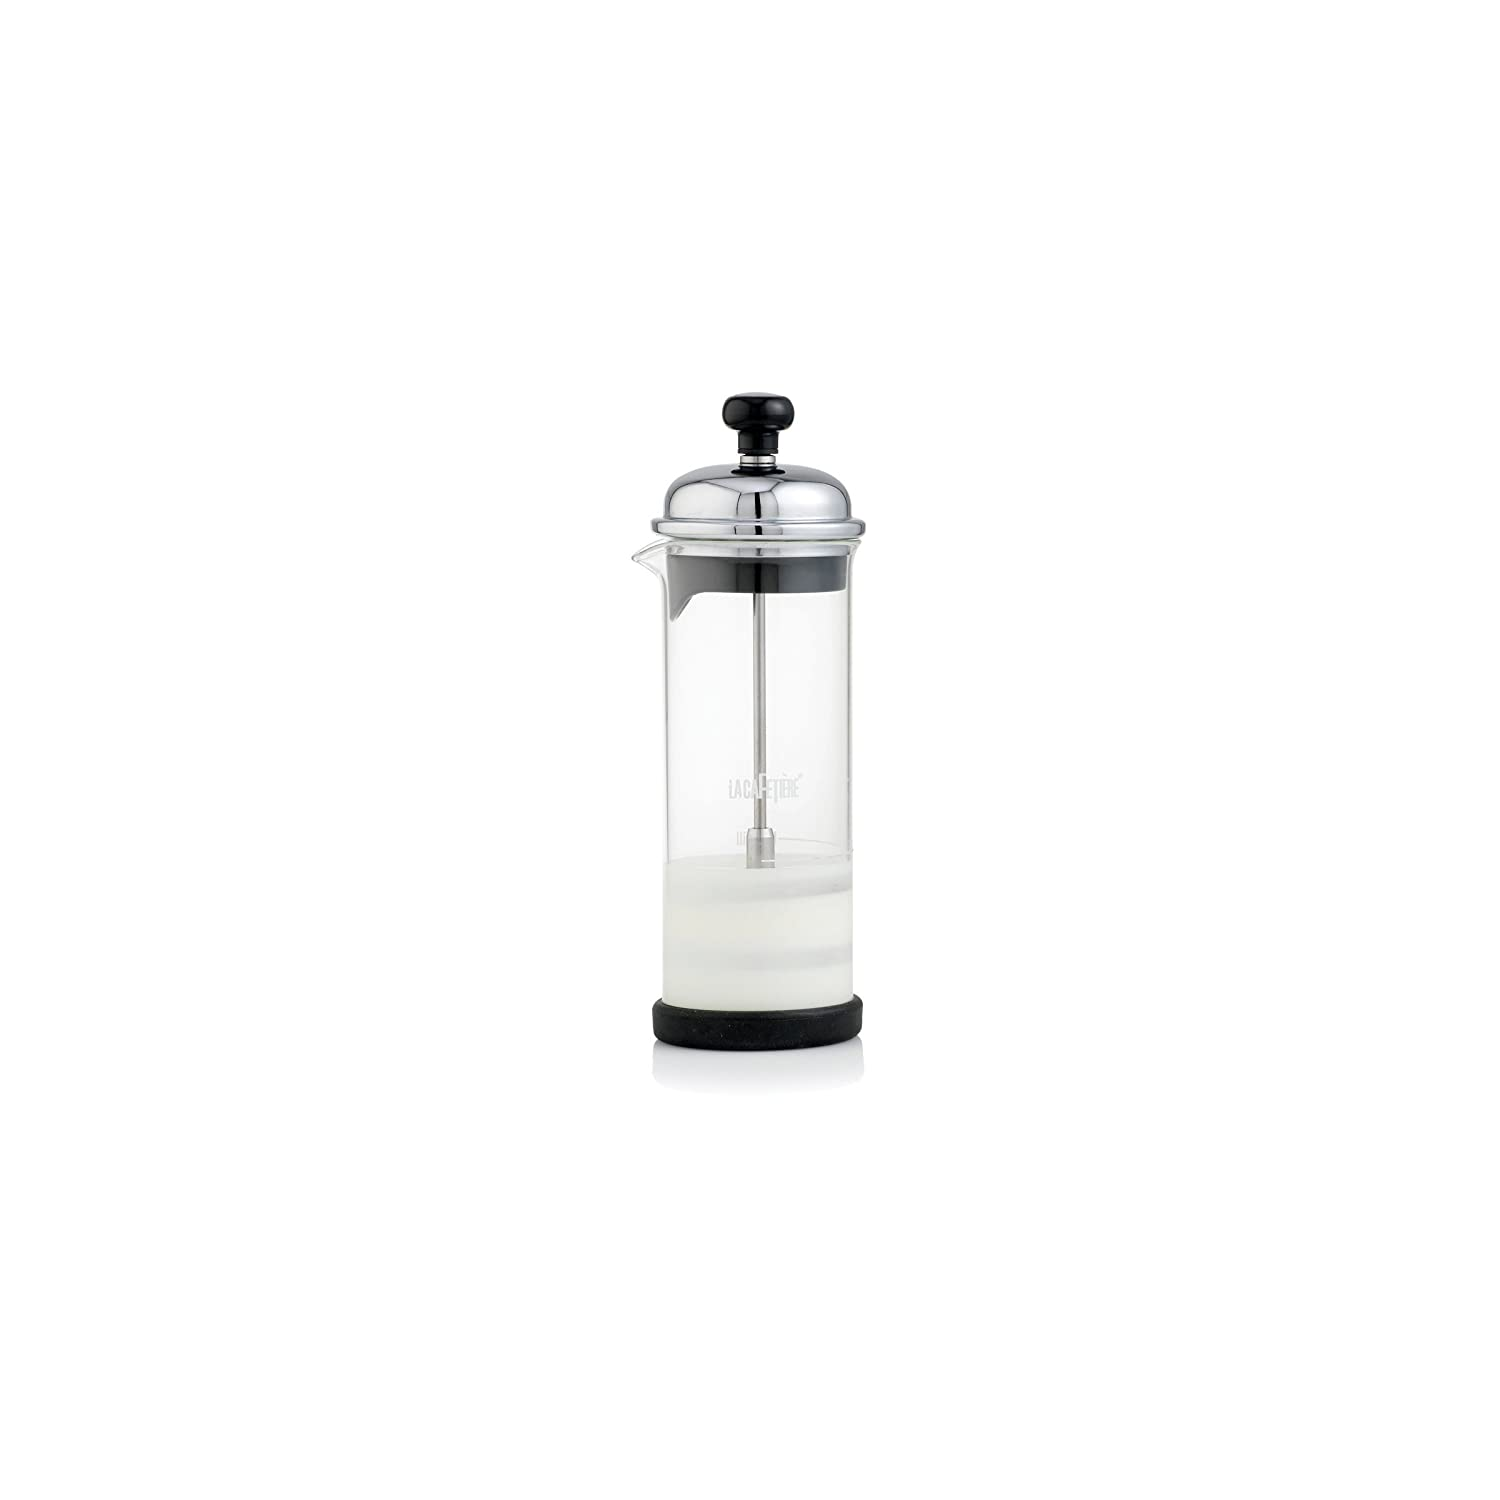 La Cafetiere Classic Milk Frother, 150mm, Clear 5170155